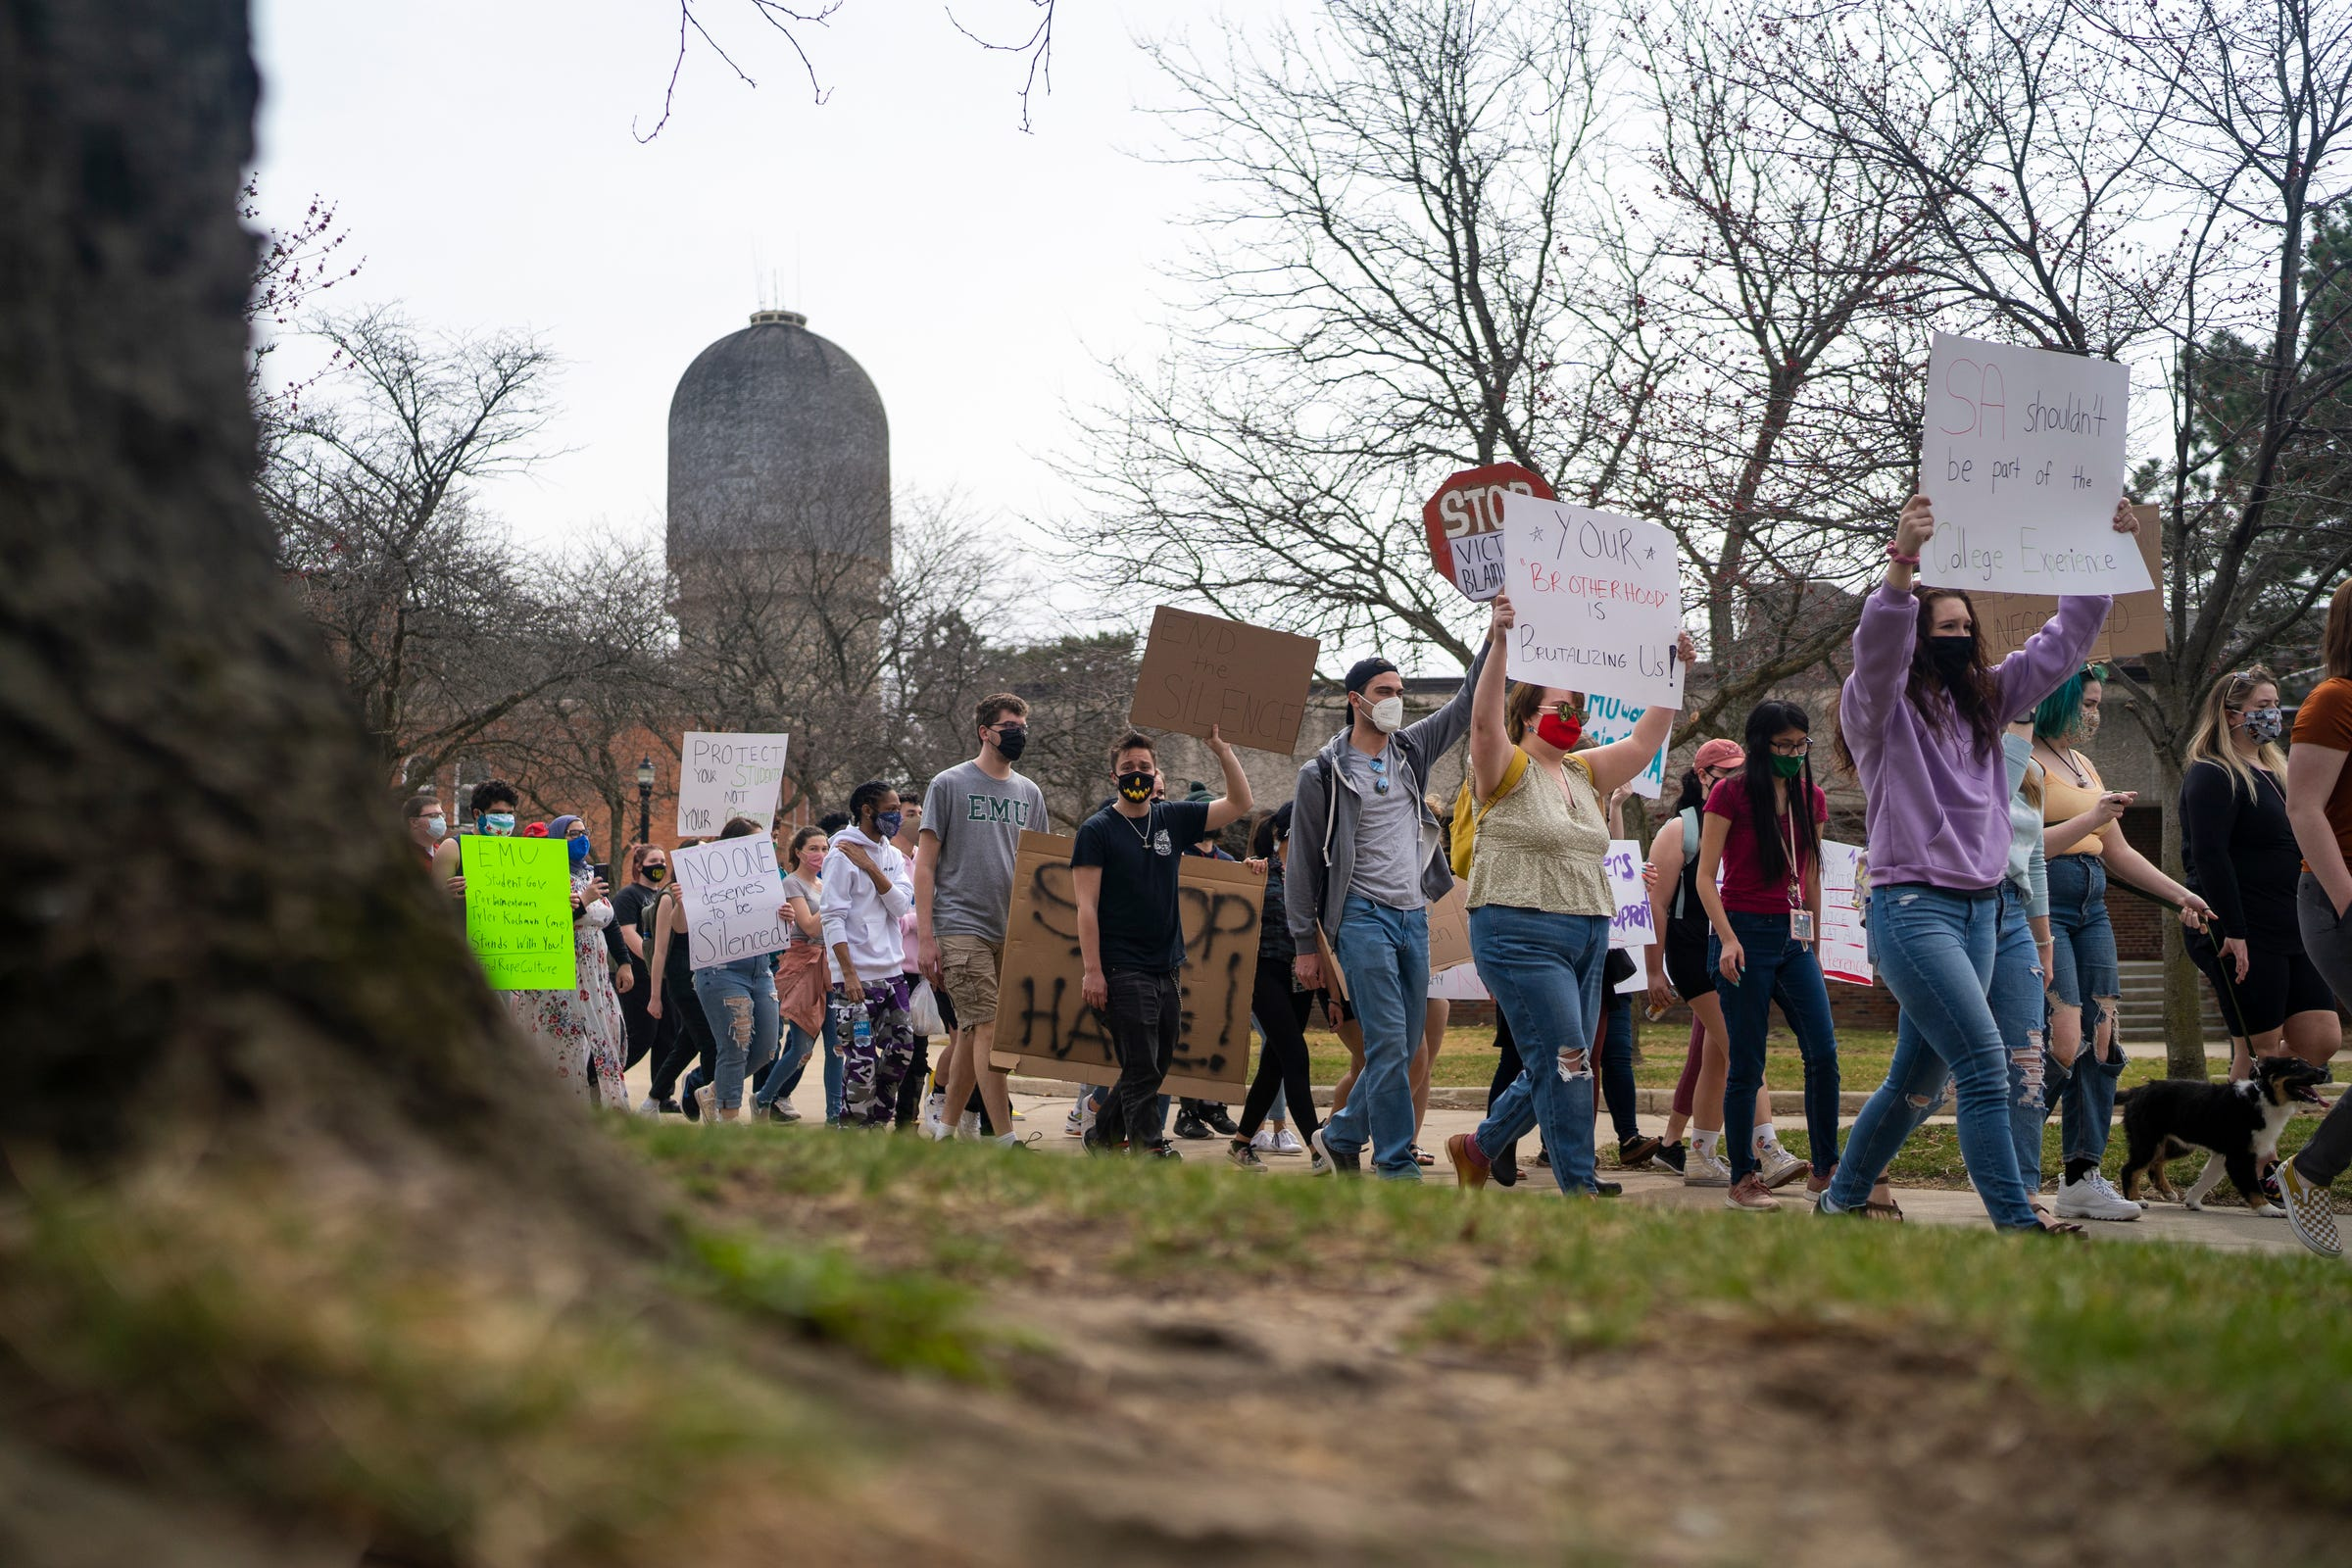 Protestors walk through campus during a march supporting sexual assault survivors in response to recent news of 11 women who filed a lawsuit against EMU at Eastern Michigan University on Thursday, March 25, 2021, in Ypsilanti. A Title IX lawsuit was filed Wednesday against the Eastern Michigan University Board of Regents and two fraternities, saying they covered up and failed to adequately address sexual assaults by several male students, according to previous Free Press reporting.